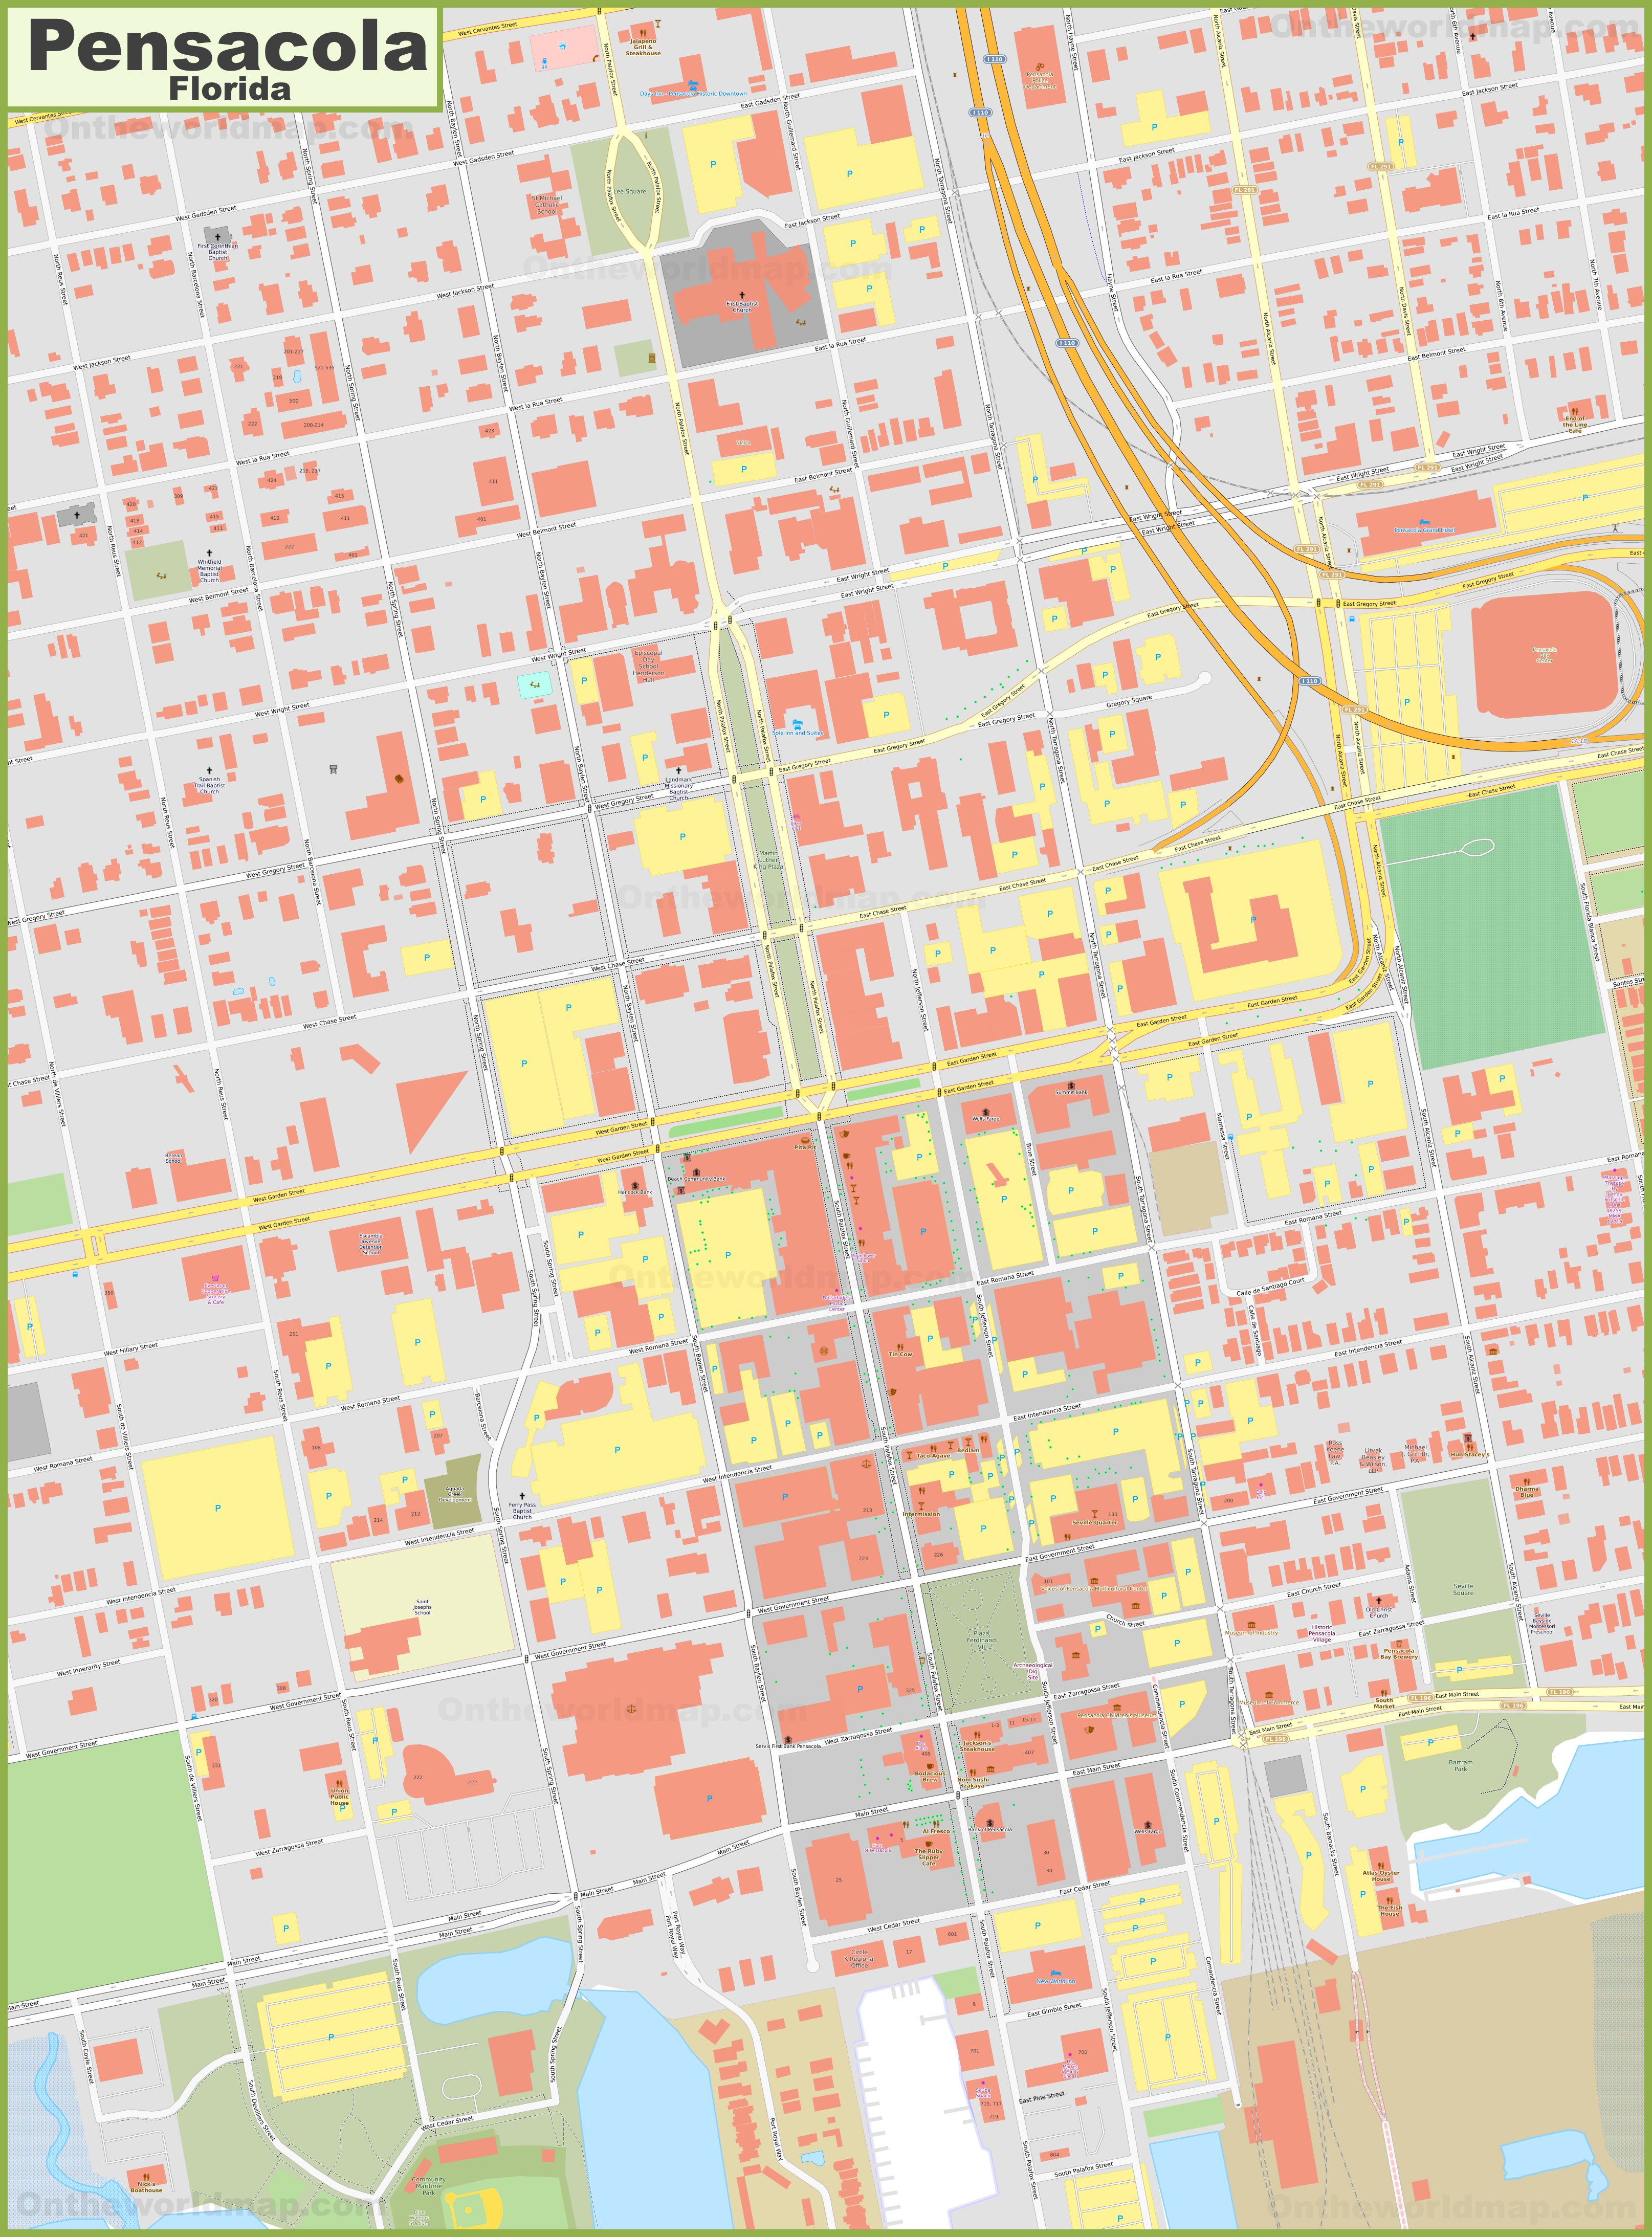 Pensacola Downtown Map on map of downtown little rock ar, tourist map of pensacola fl, map of downtown paterson nj, map of pensacola and destin florida, map of downtown roseville ca, google map of pensacola fl, map of downtown plano tx, map of beaches fl, map of downtown traverse city mi, airport pensacola fl, map of downtown redwood city ca, map of downtown rockville md, map of pensacola christian college, streets in pensacola fl, map of downtown las vegas nv, map of downtown palm springs ca, map of downtown new bern nc, map of downtown santa barbara ca, road map of pensacola fl, map of downtown new orleans la,